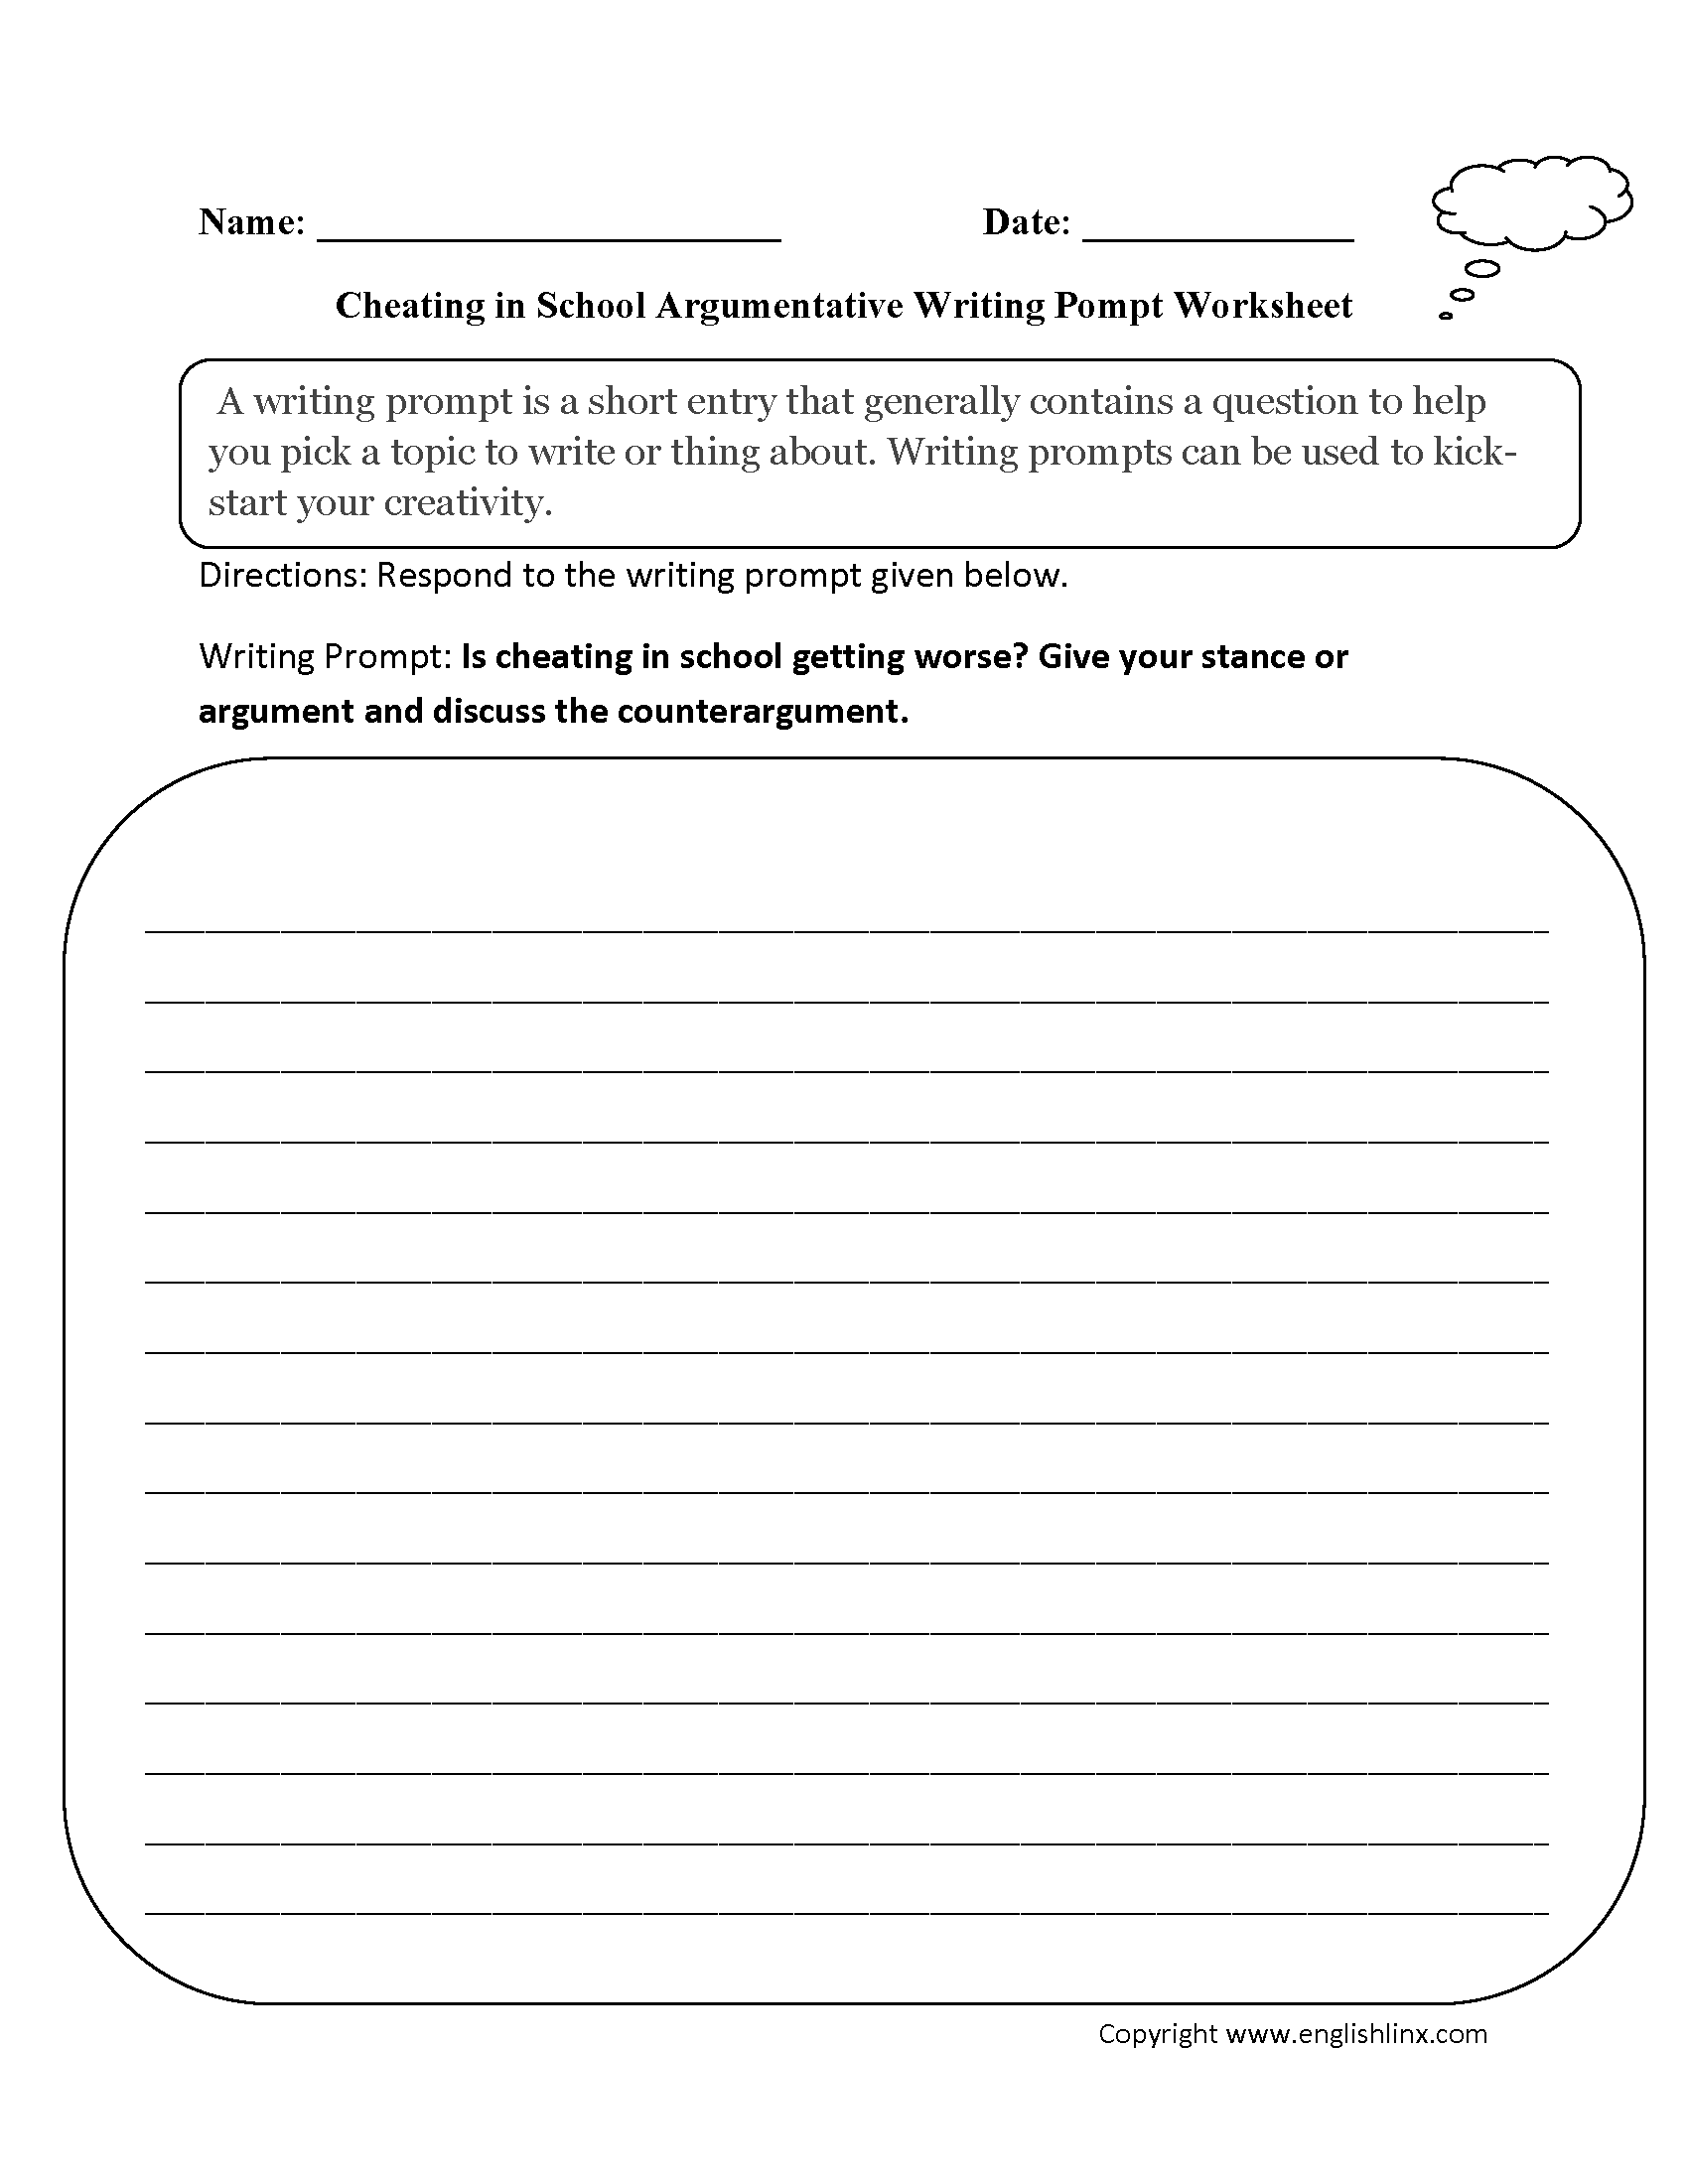 Cheating In Schools Argumentative Writing Prompts